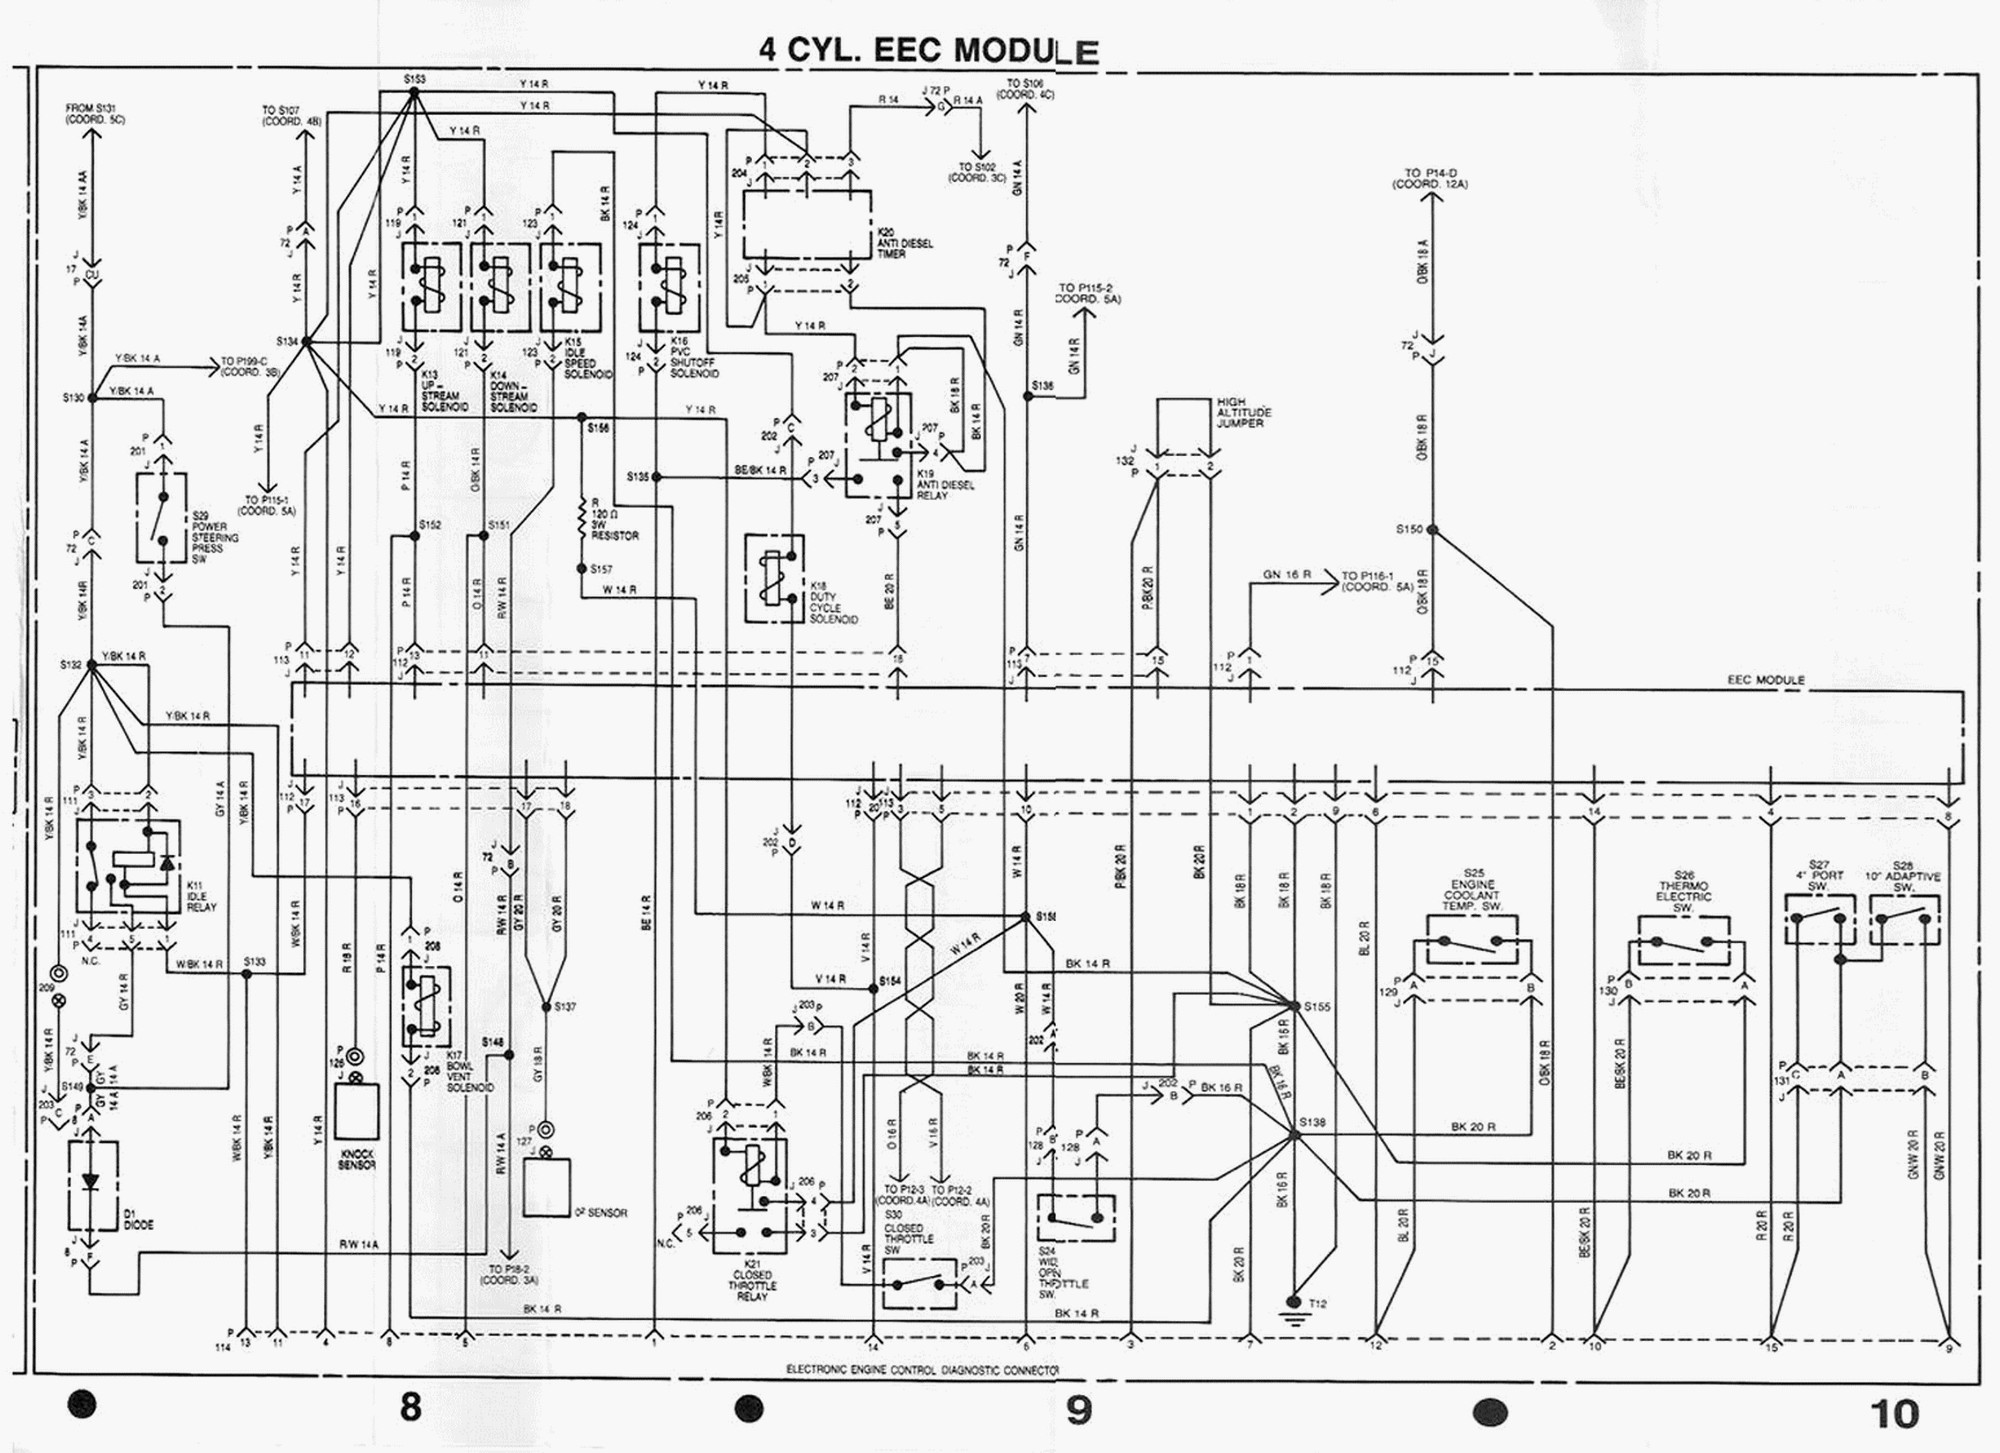 concord wiring diagram wiring diagram nowconcord wiring diagram wiring diagram z4 concord coachmen wiring diagrams concord wiring diagram